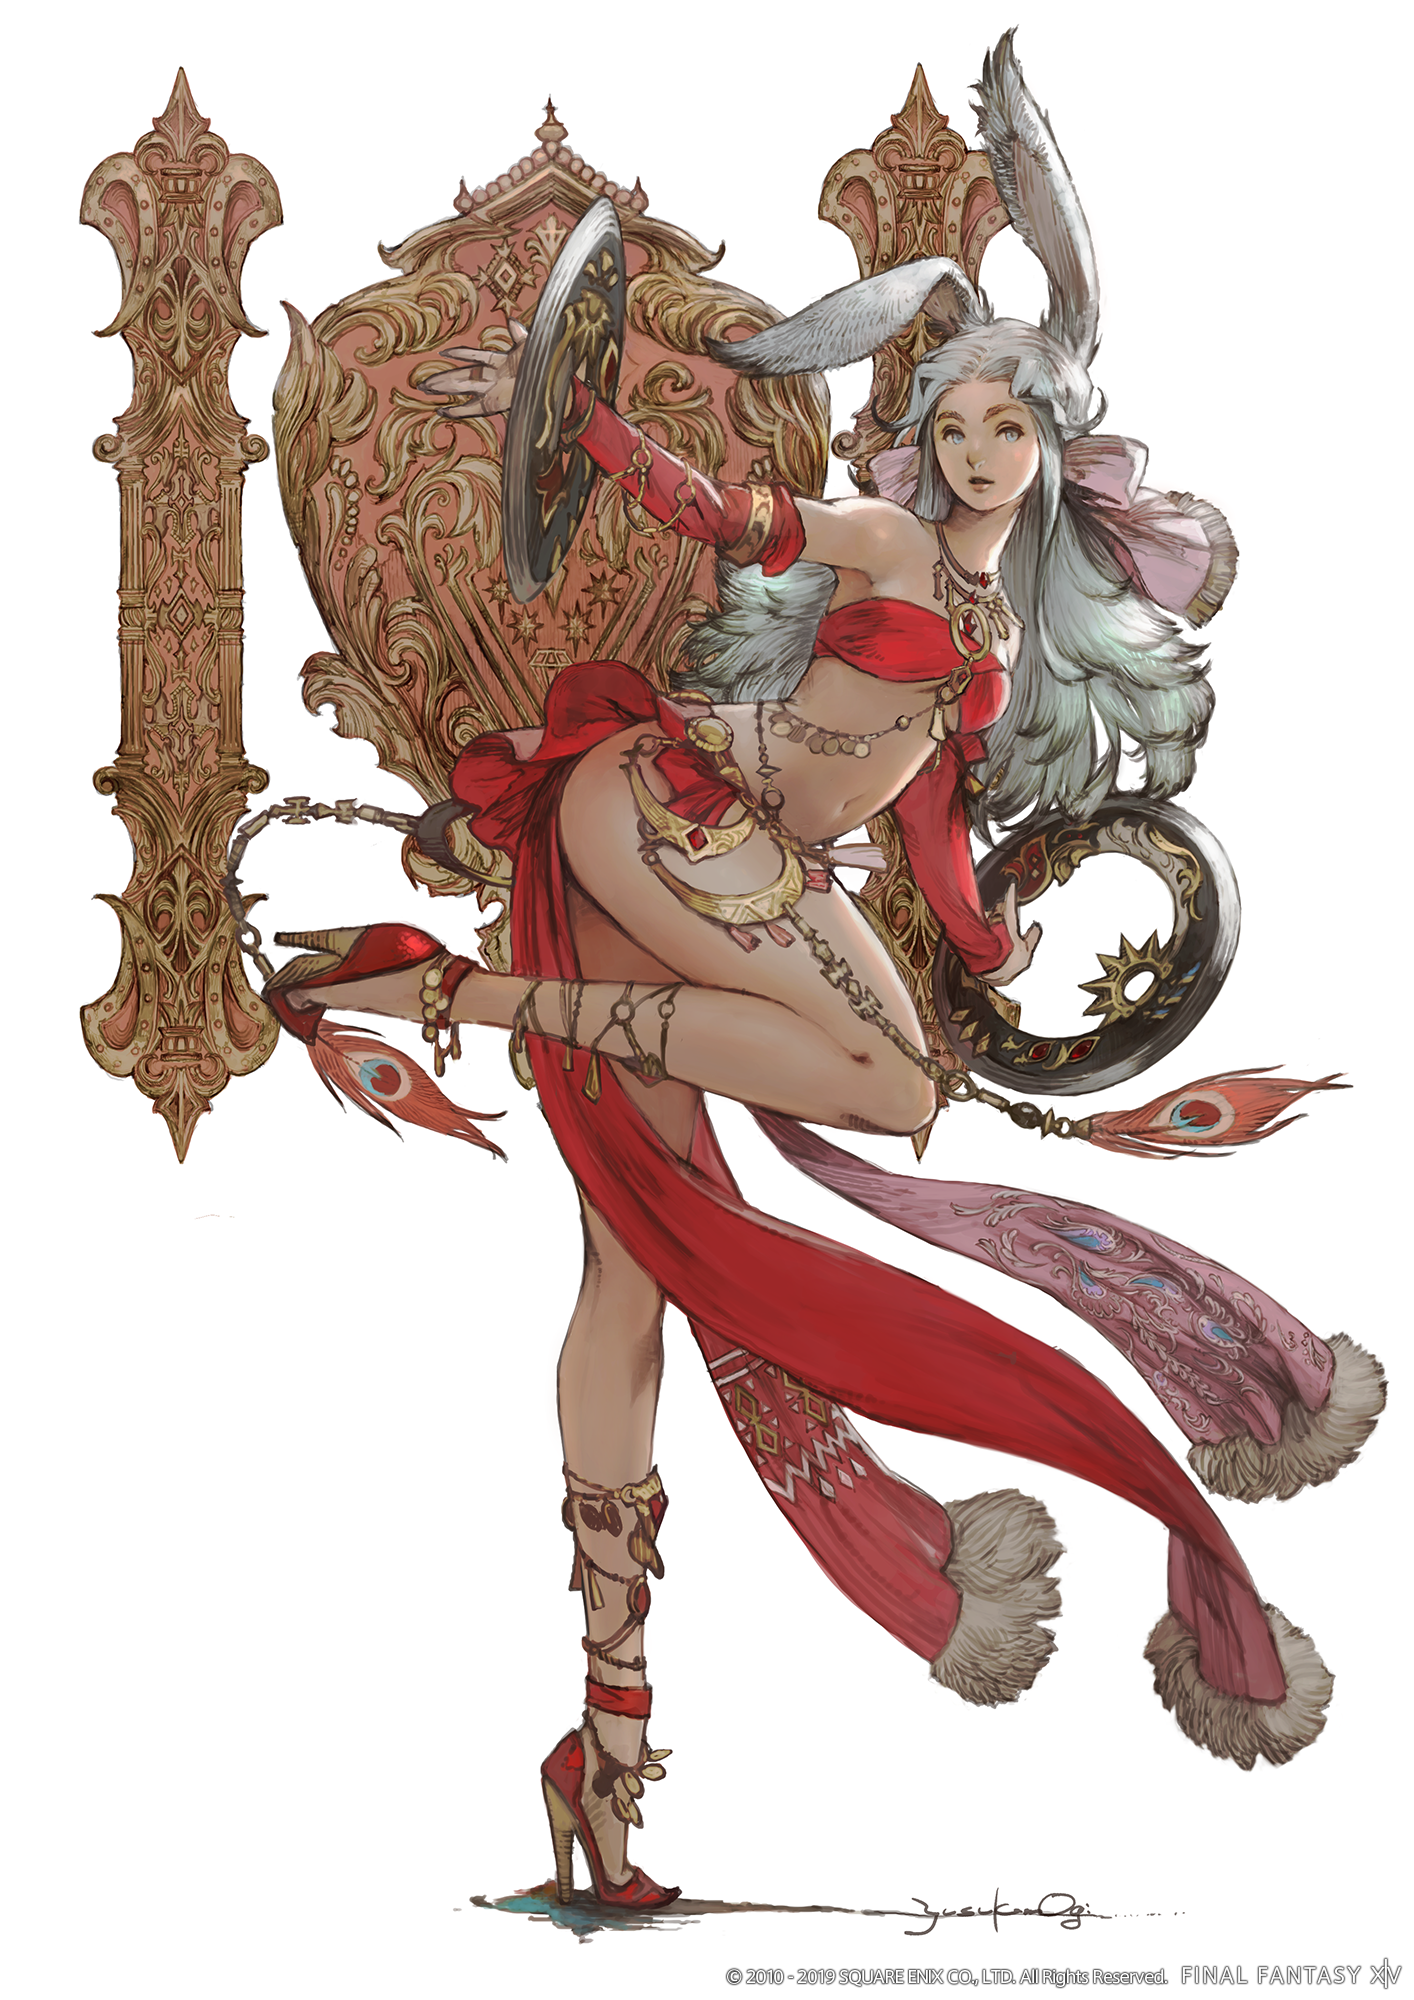 Dancer (Final Fantasy XIV) | Final Fantasy Wiki | FANDOM powered by